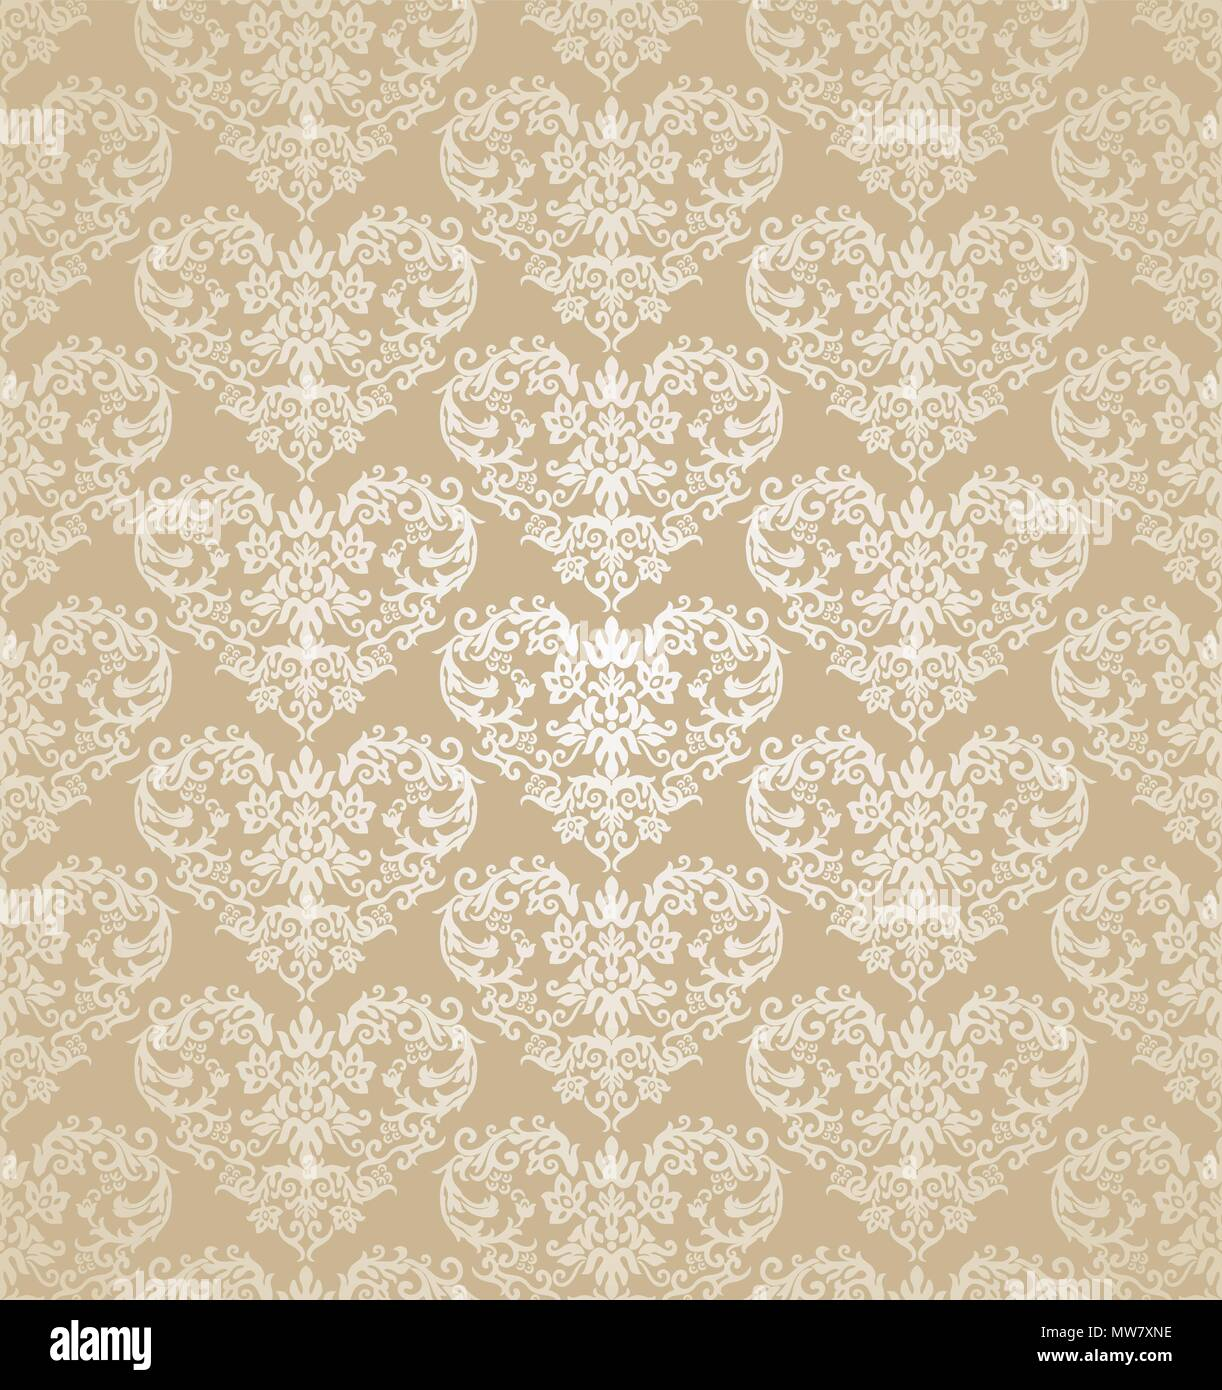 Seamless Floral Hearts Golden Damask Wallpaper This Image Is A